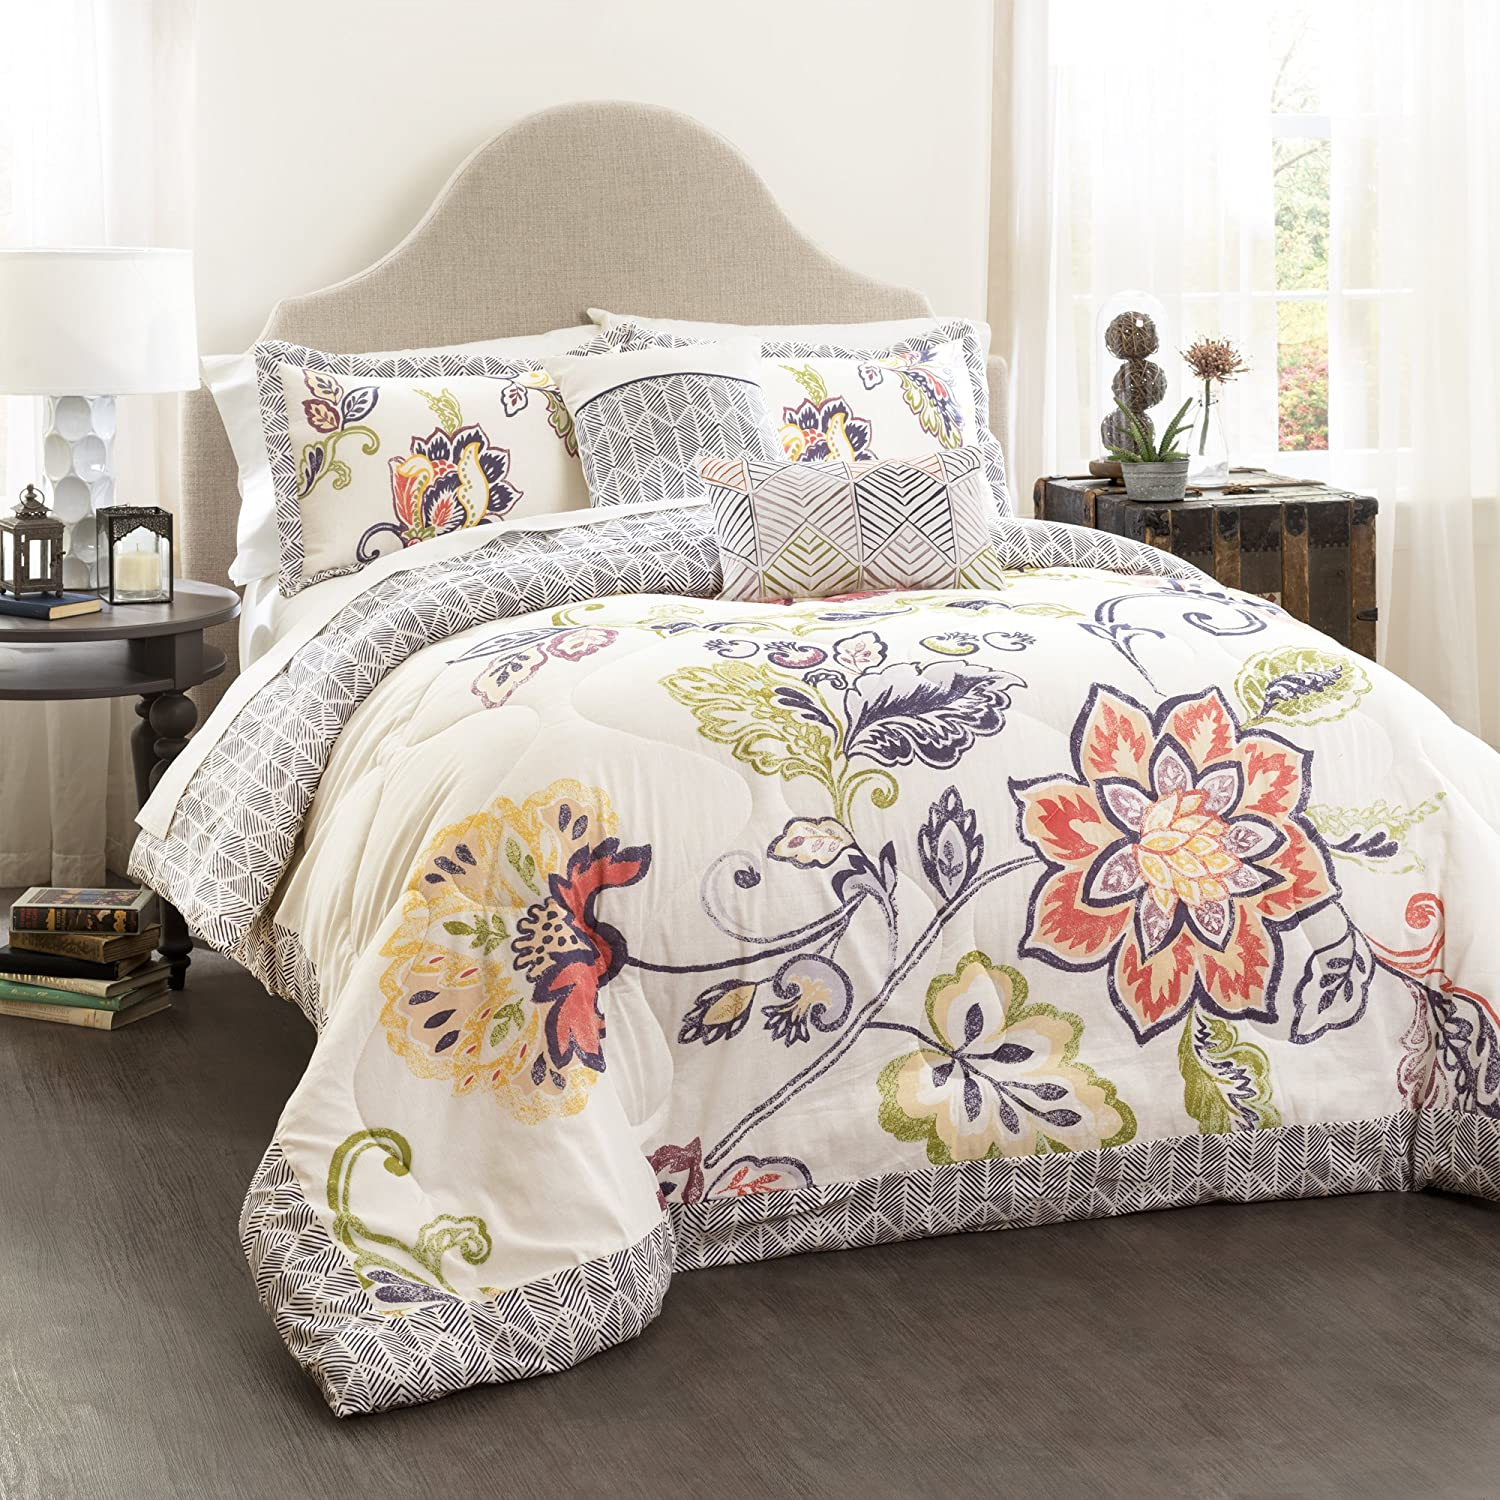 Lush Decor Ultra-Soft Aster Quilted Comforter Coral/Navy 5-Piece Set